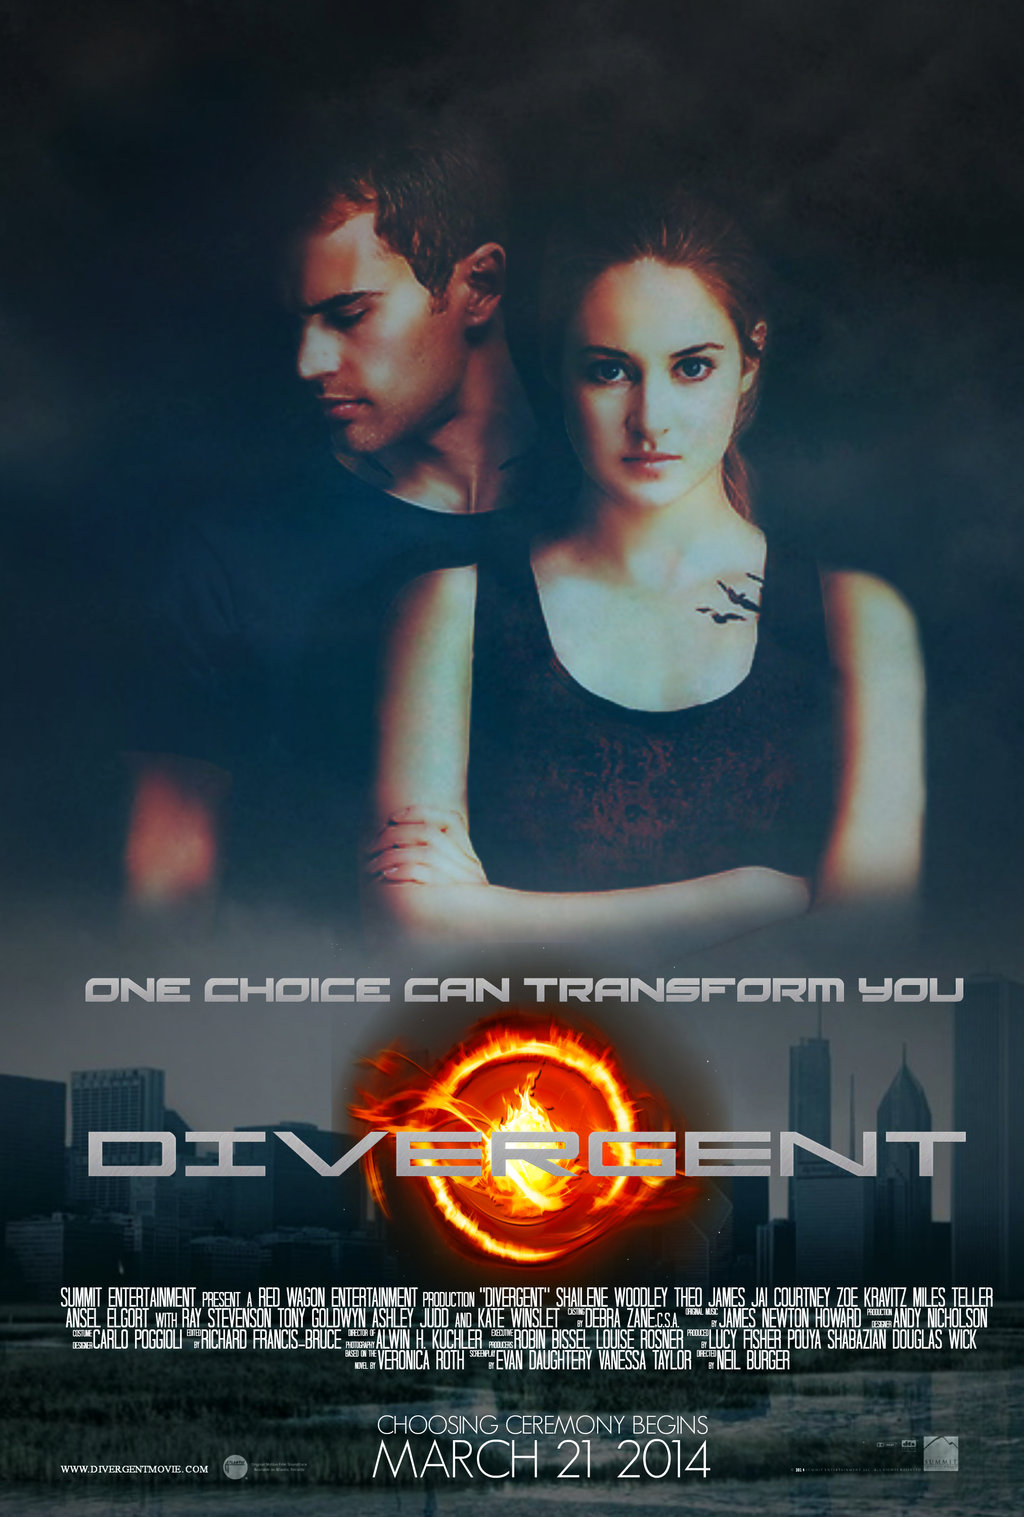 """Divergent"" is the first in a trilogy. It is followed by ""Insurgent"" and ""Allegiance,"" which are scheduled to be adapted, with tentative releases in 2015 and 2016. (Photo by Summit Entertainment)"